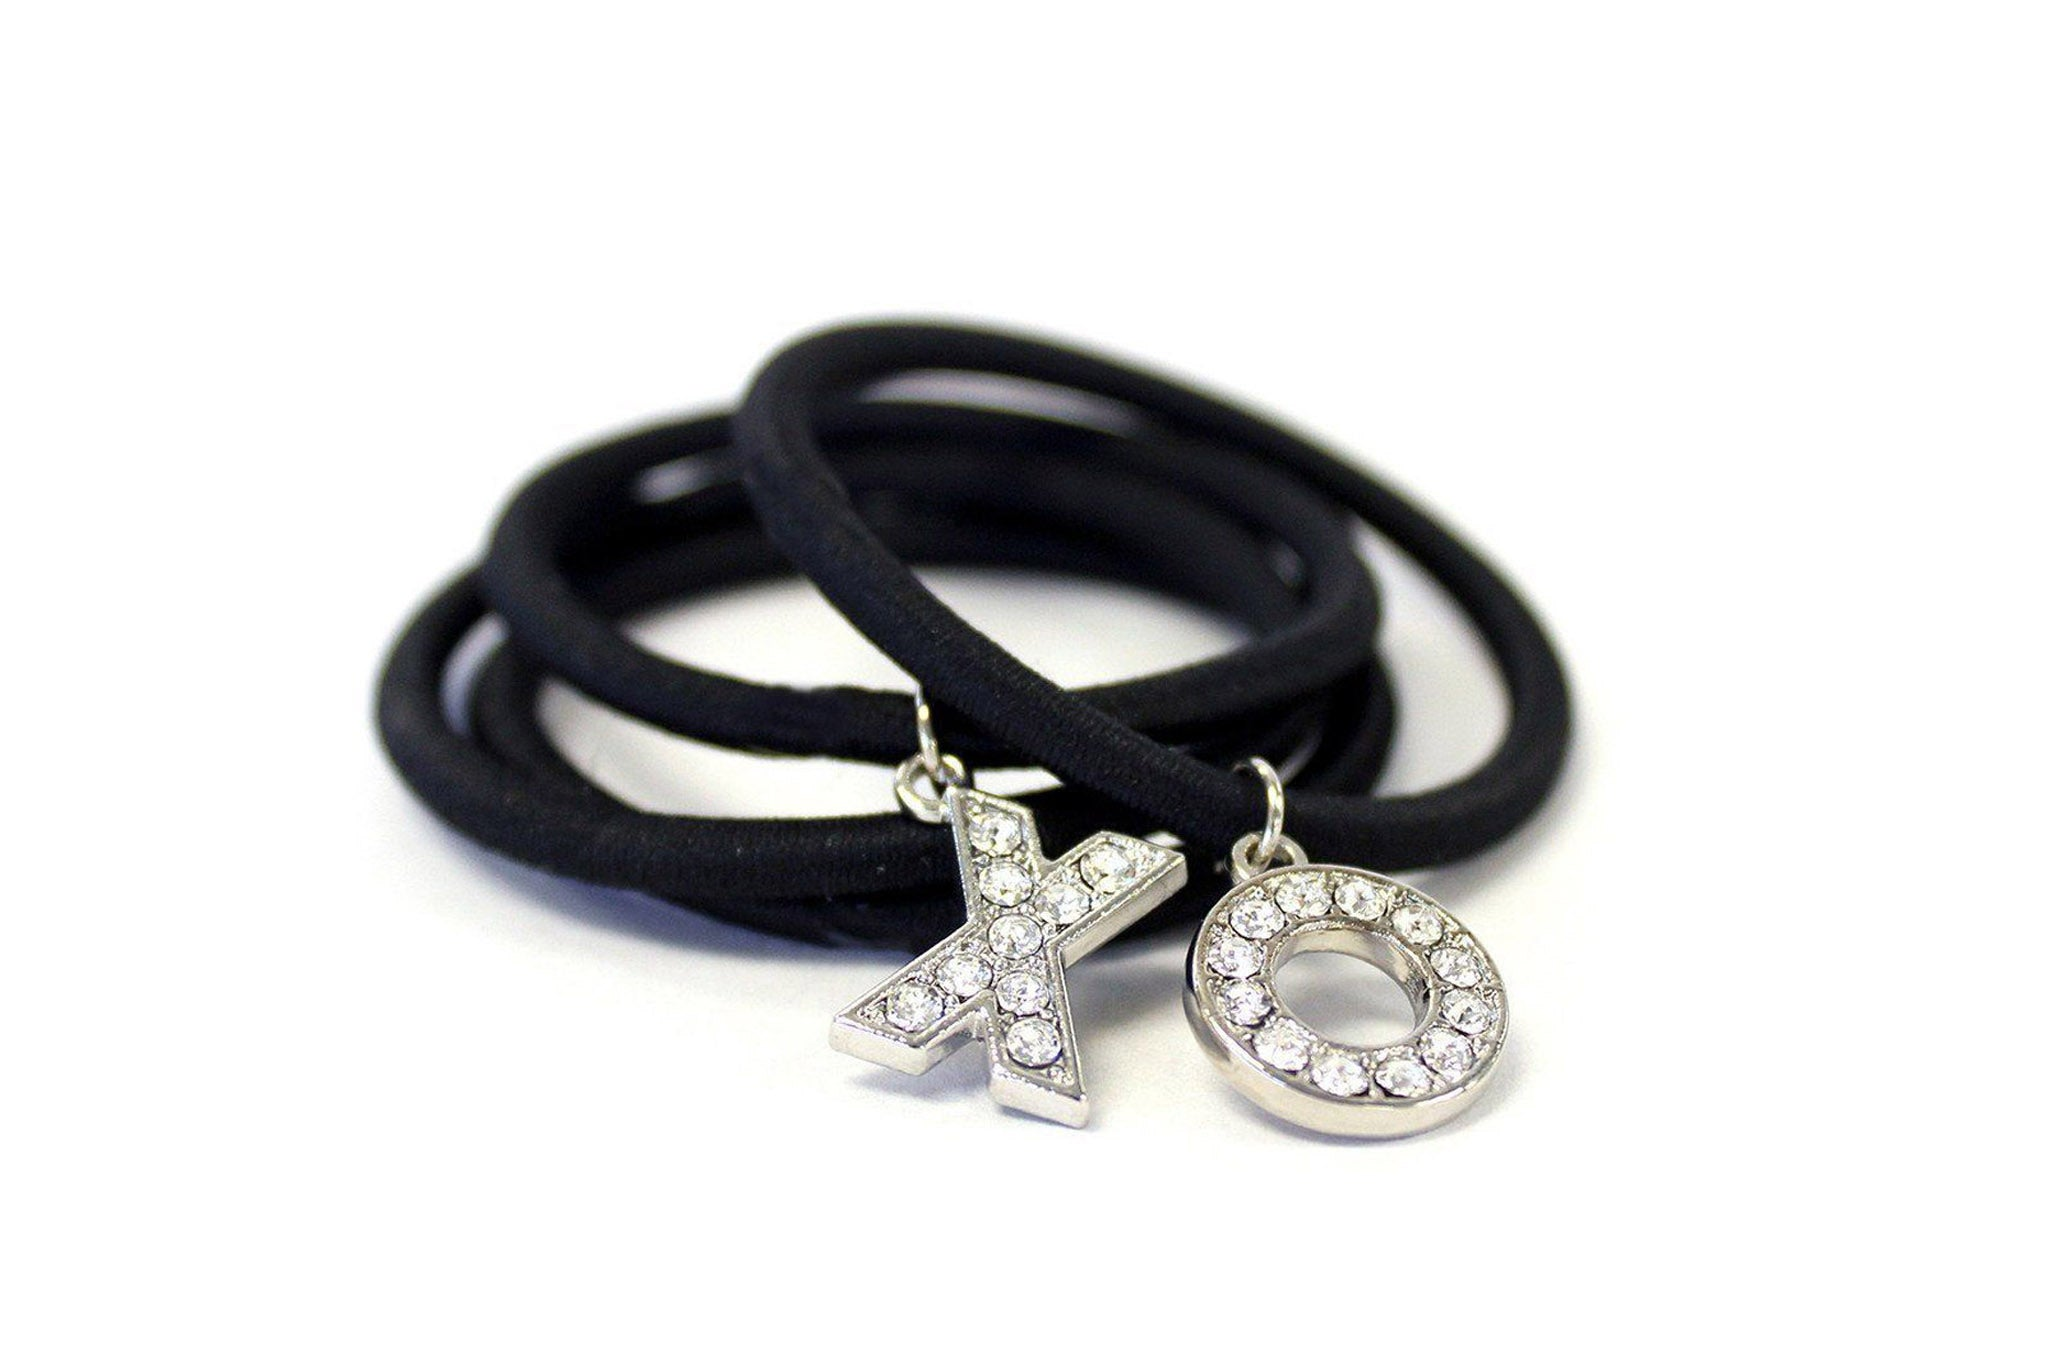 Swarovski encrusted hair tie bracelet charms – Maria shireen® 373d5639601